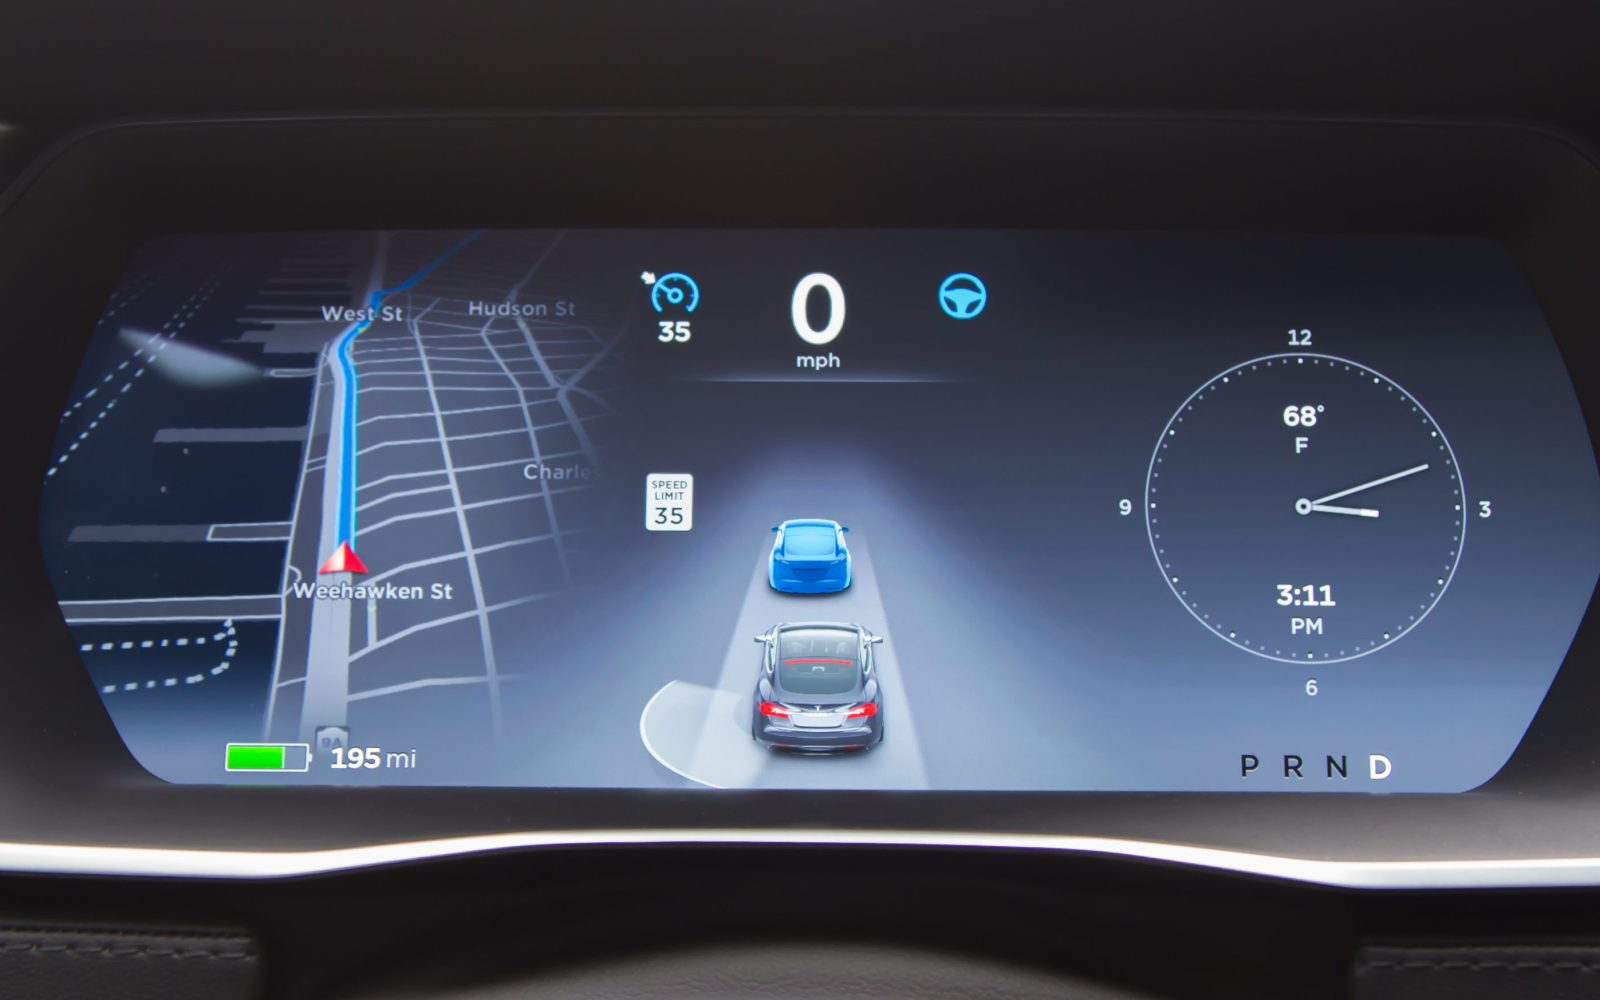 Elon Musk explains Tesla Autopilot's new capacity to see ahead of the car in front of you